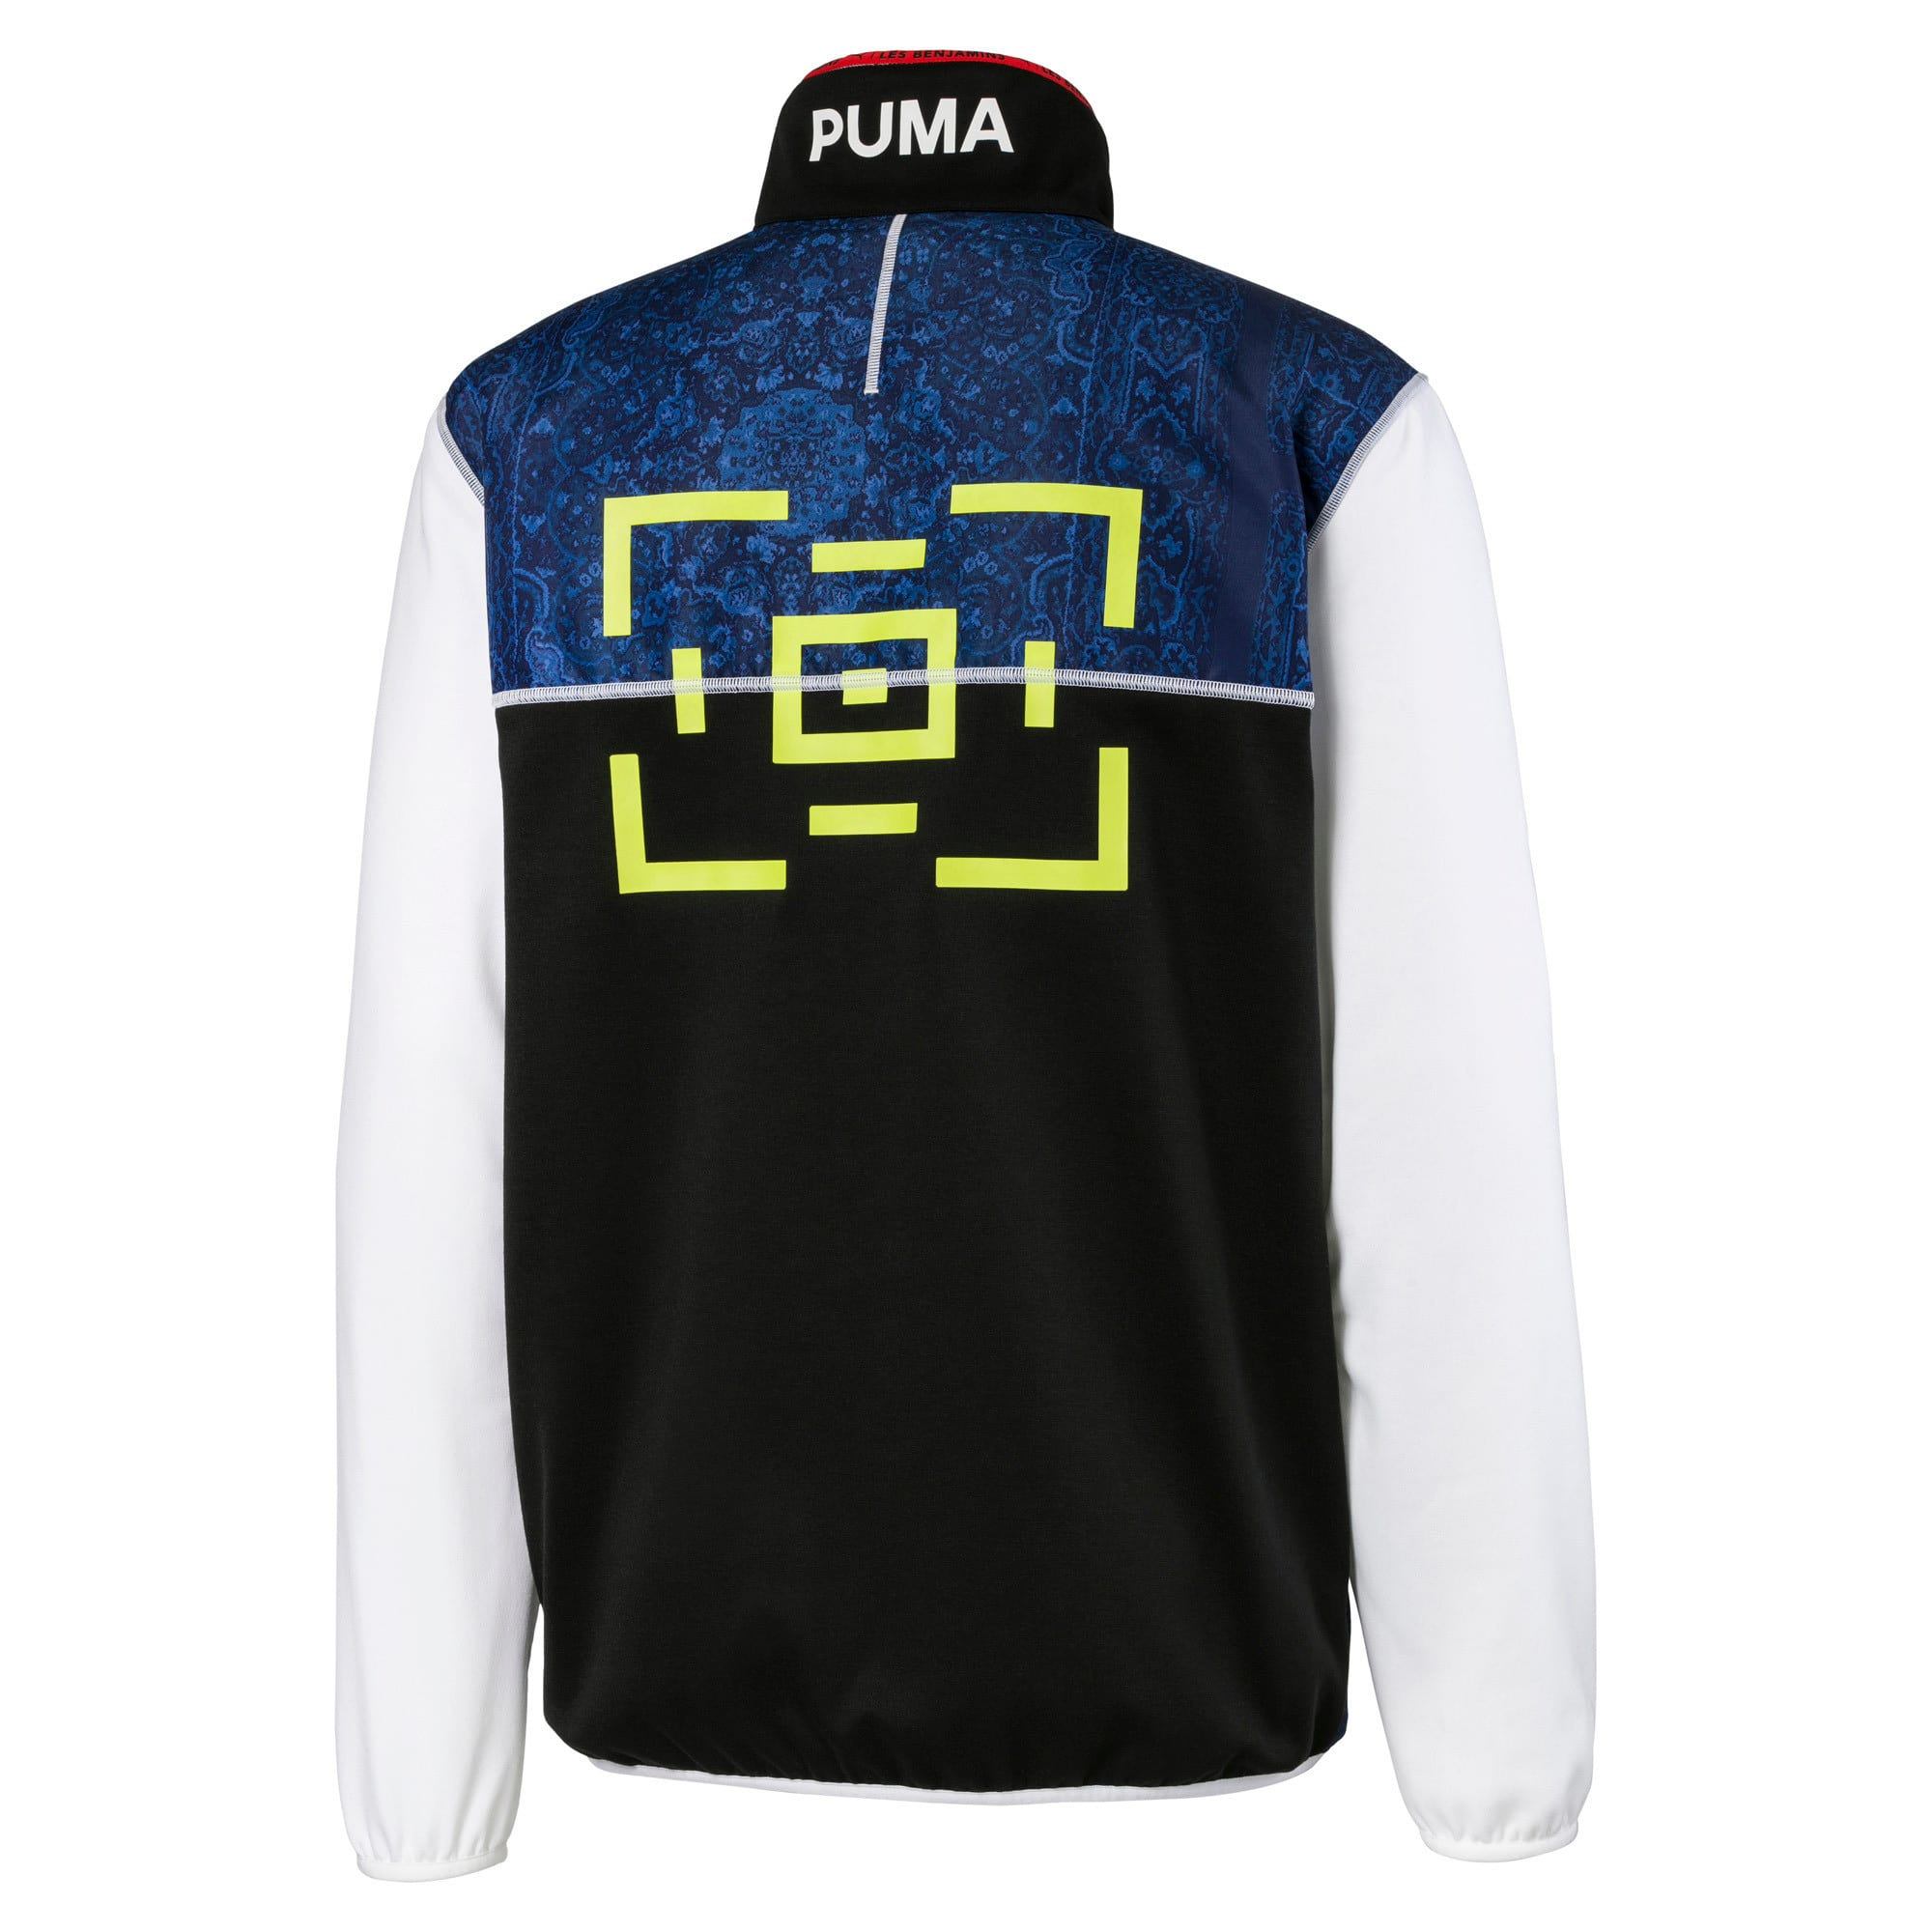 Thumbnail 5 of PUMA x LES BENJAMINS Men's Track Top, Puma White, medium